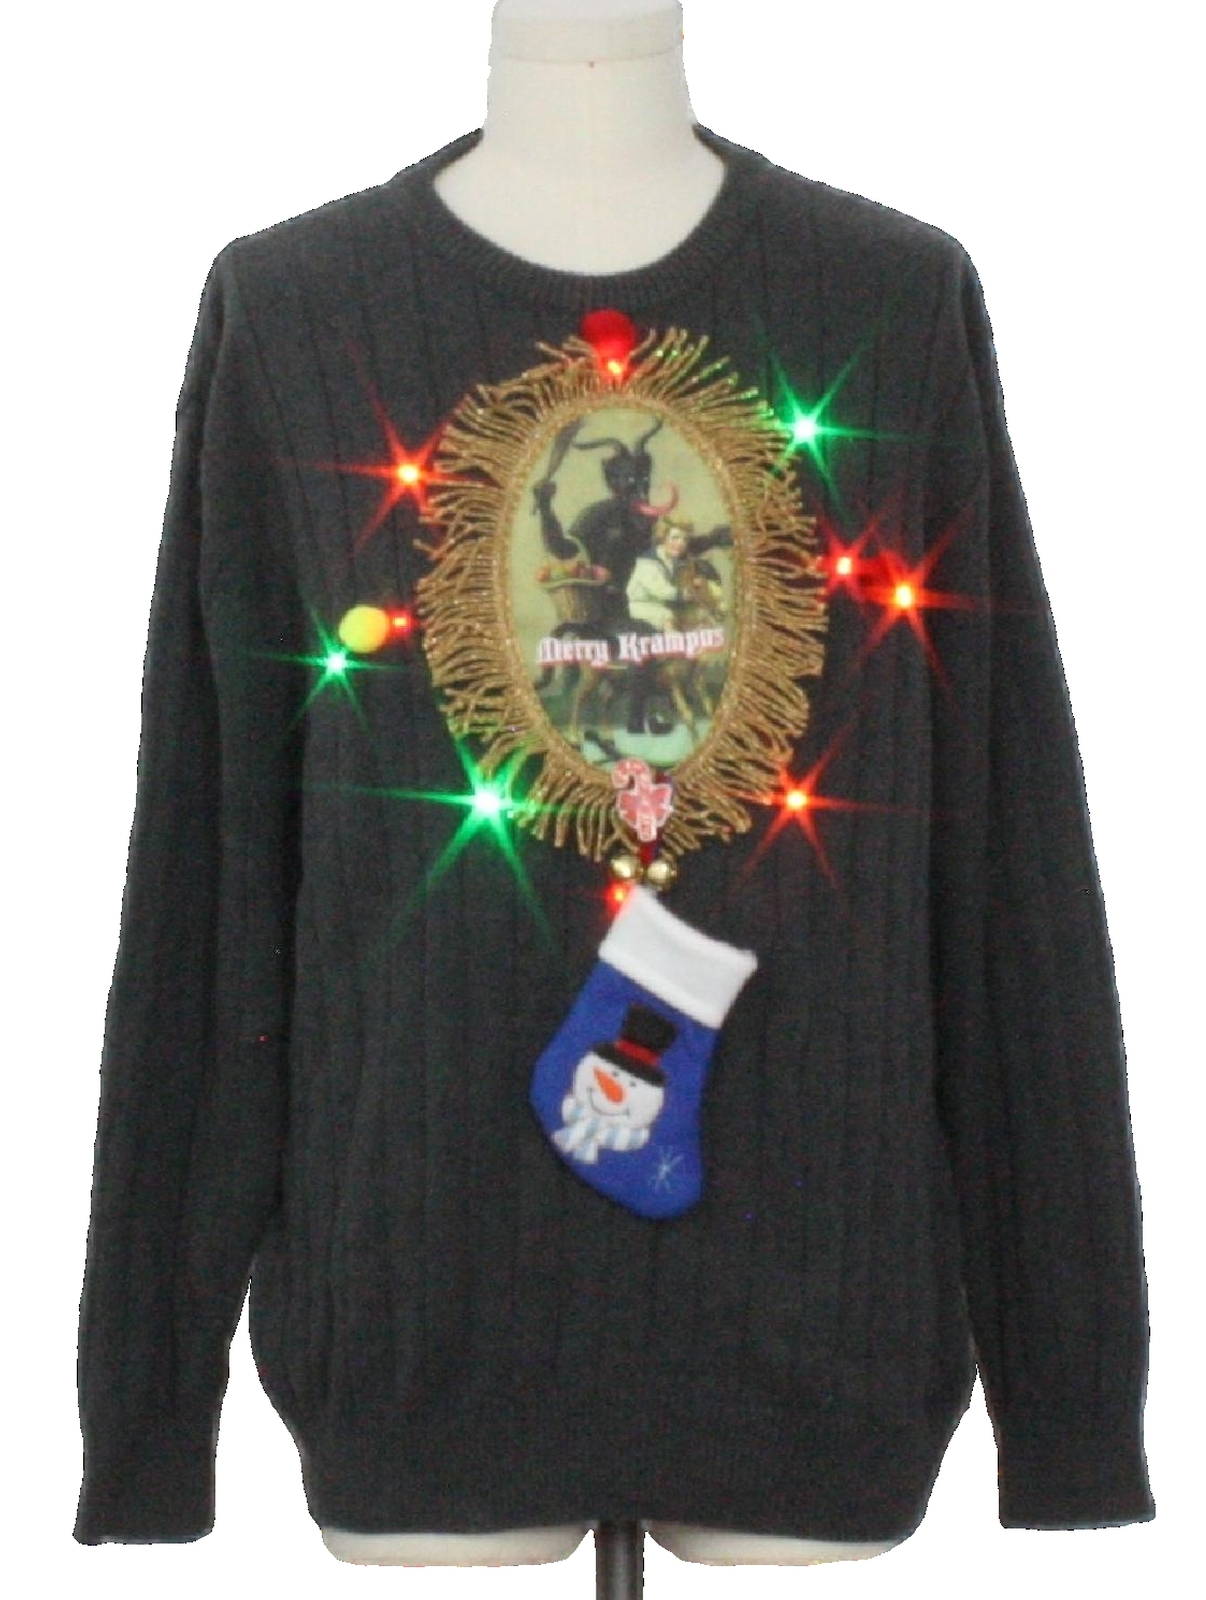 b71a9e0652a Mens Multicolor Lightup Krampus Ugly Christmas Sweater  -High Sierra ...